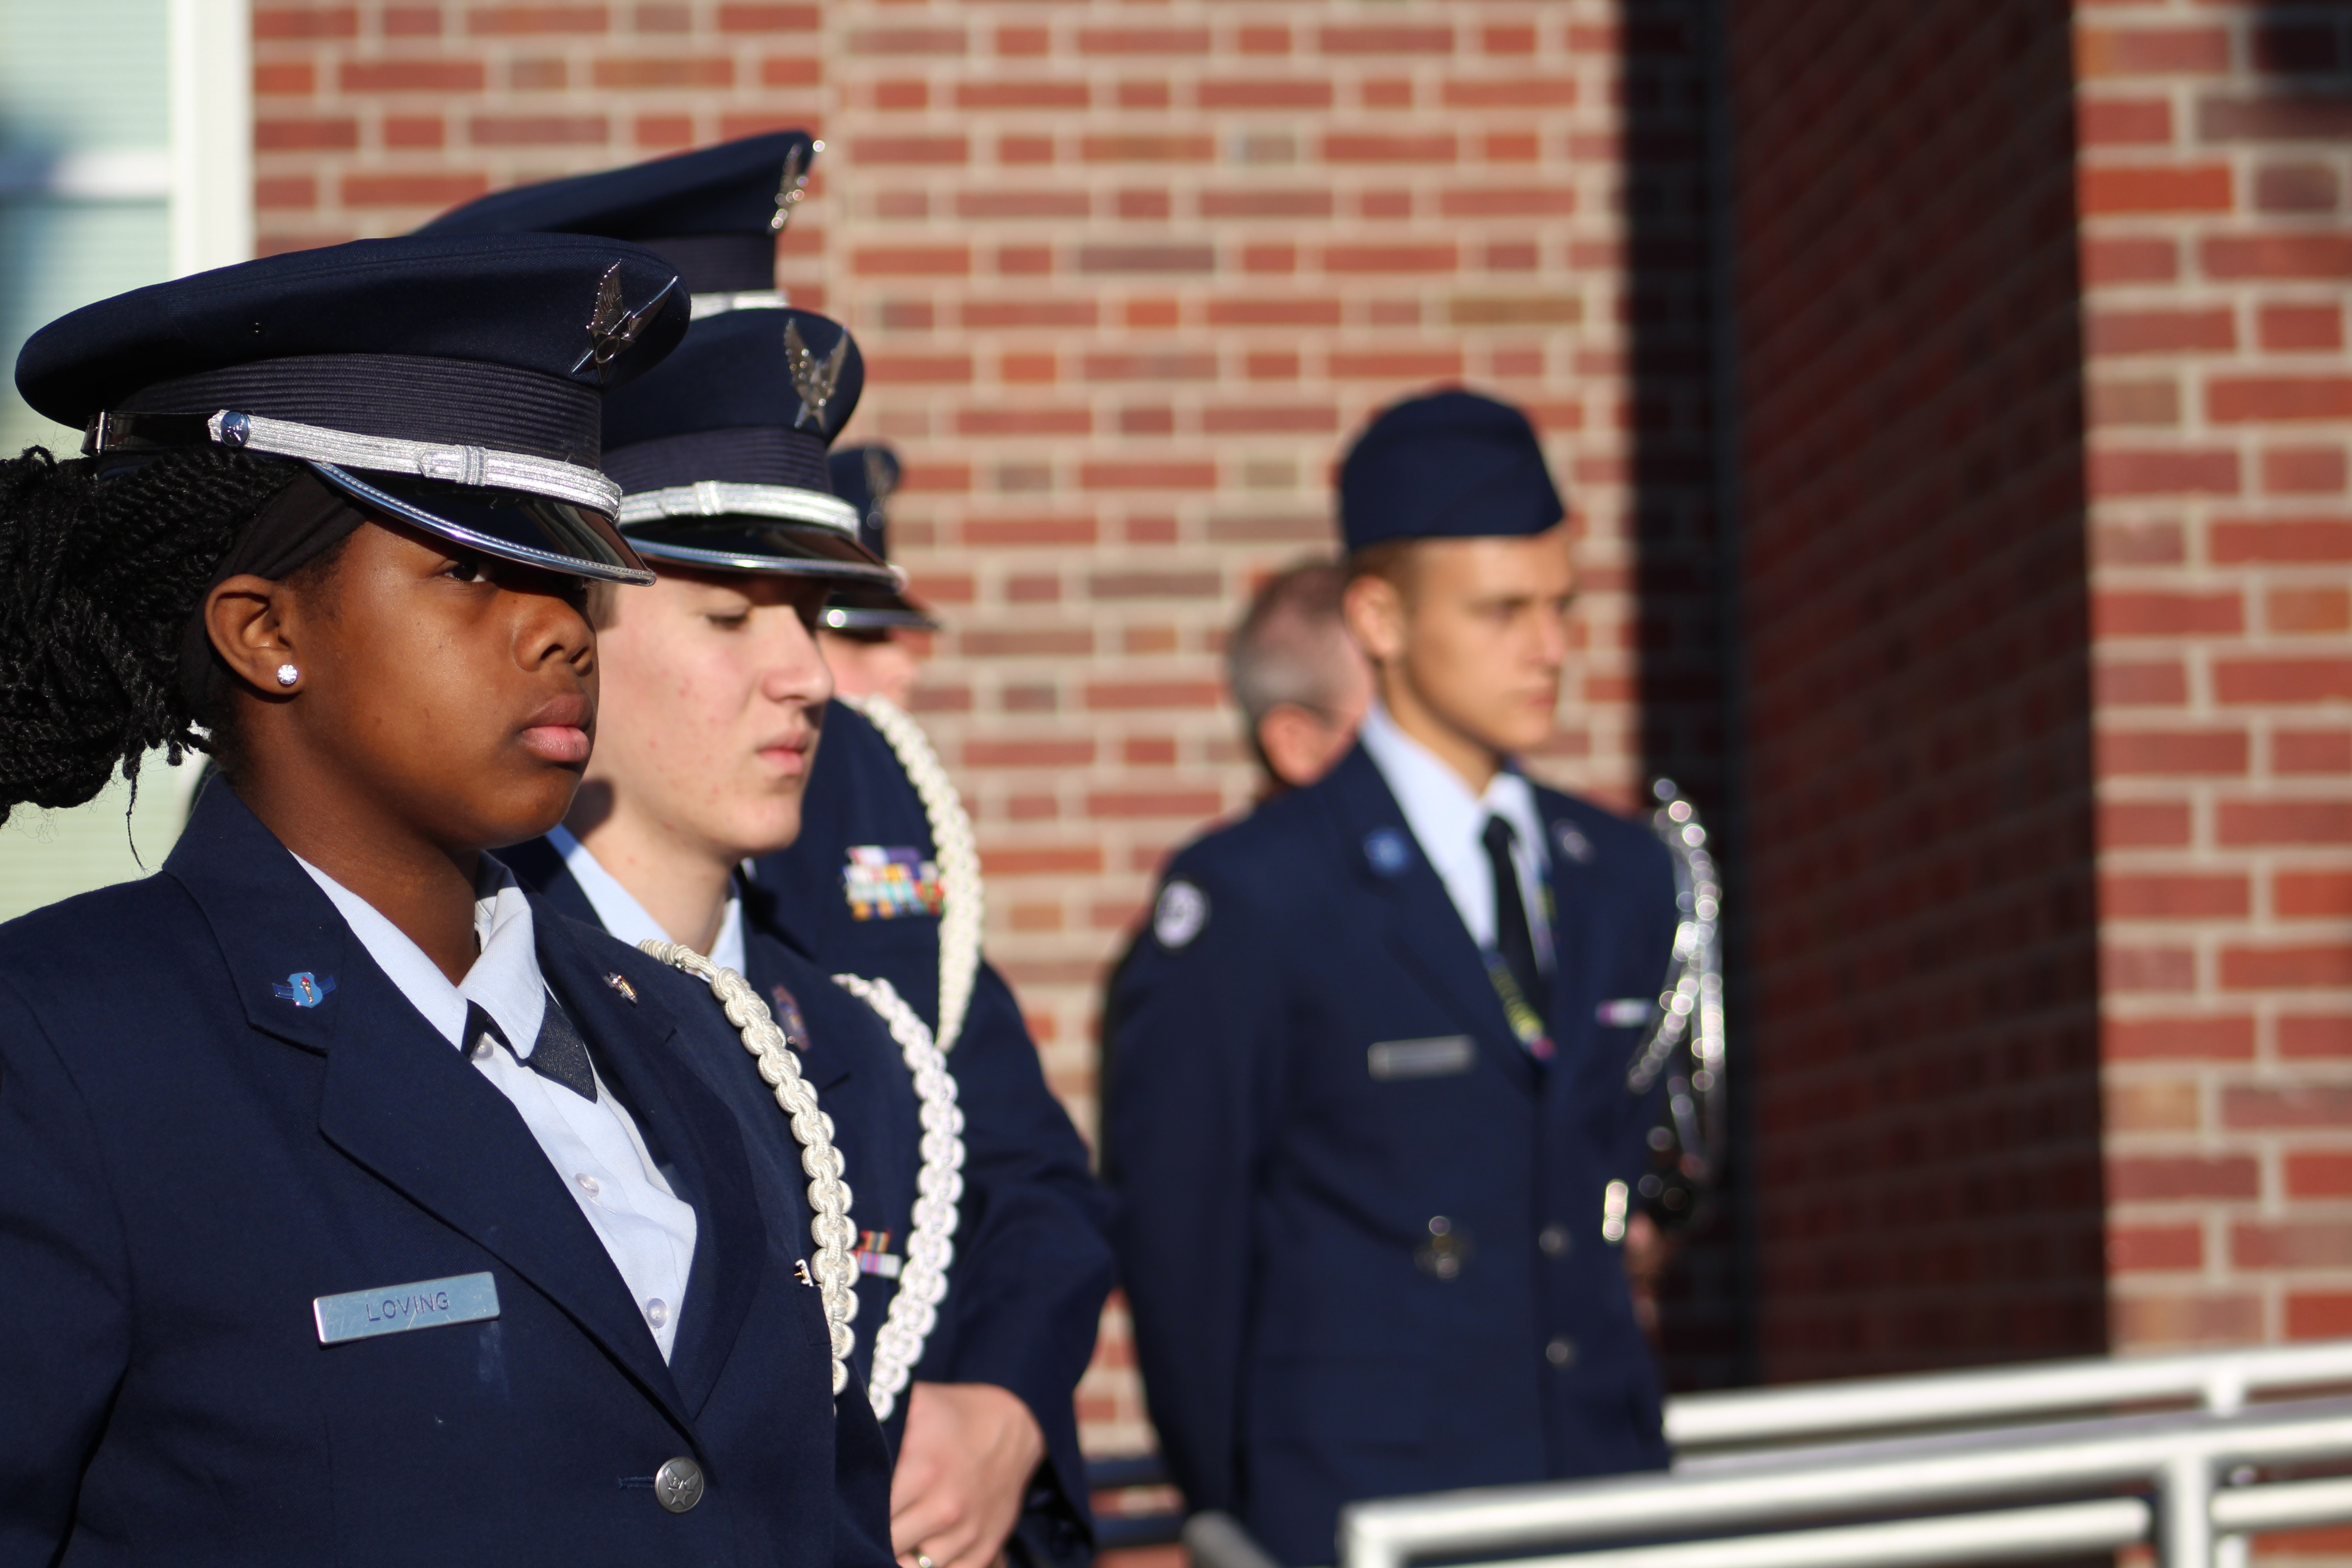 AFJROTC Impact on Students and the Community